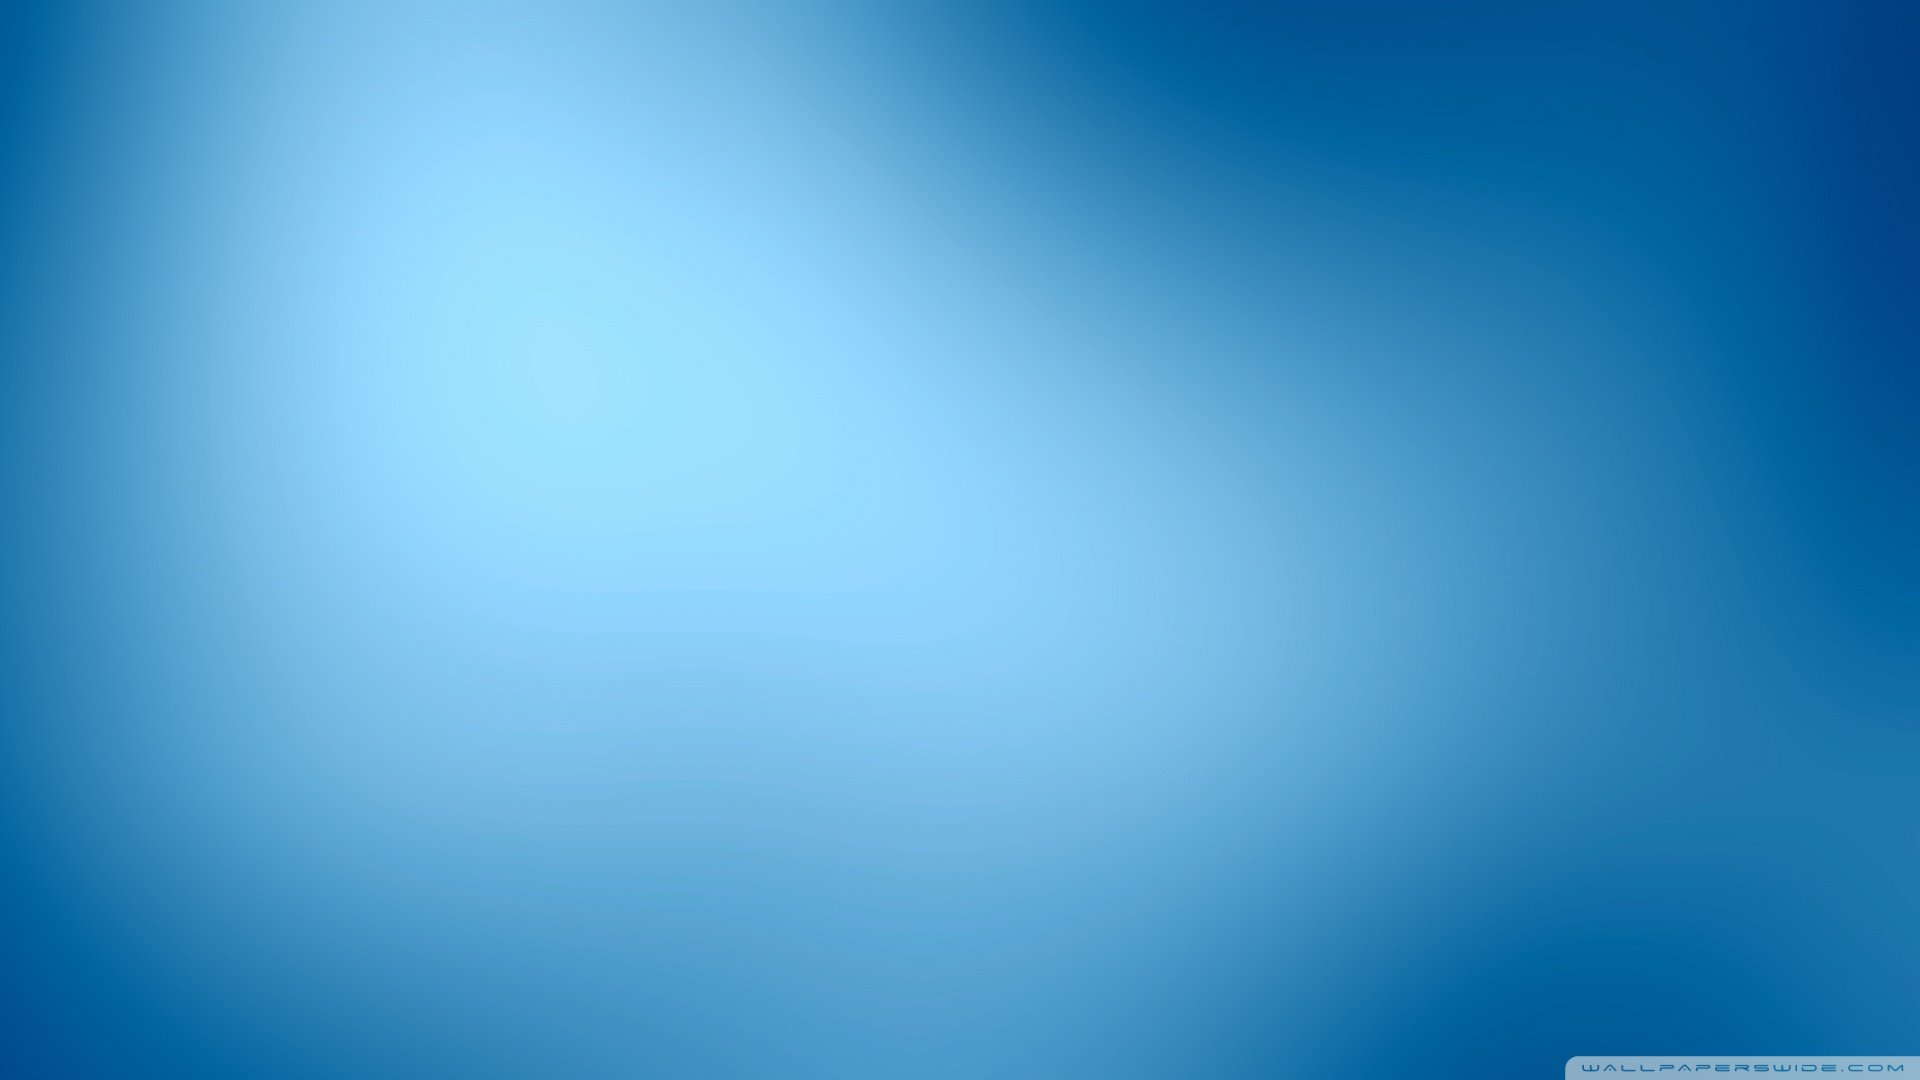 Attachment simple blue background abstract photo blue background 1920x1080